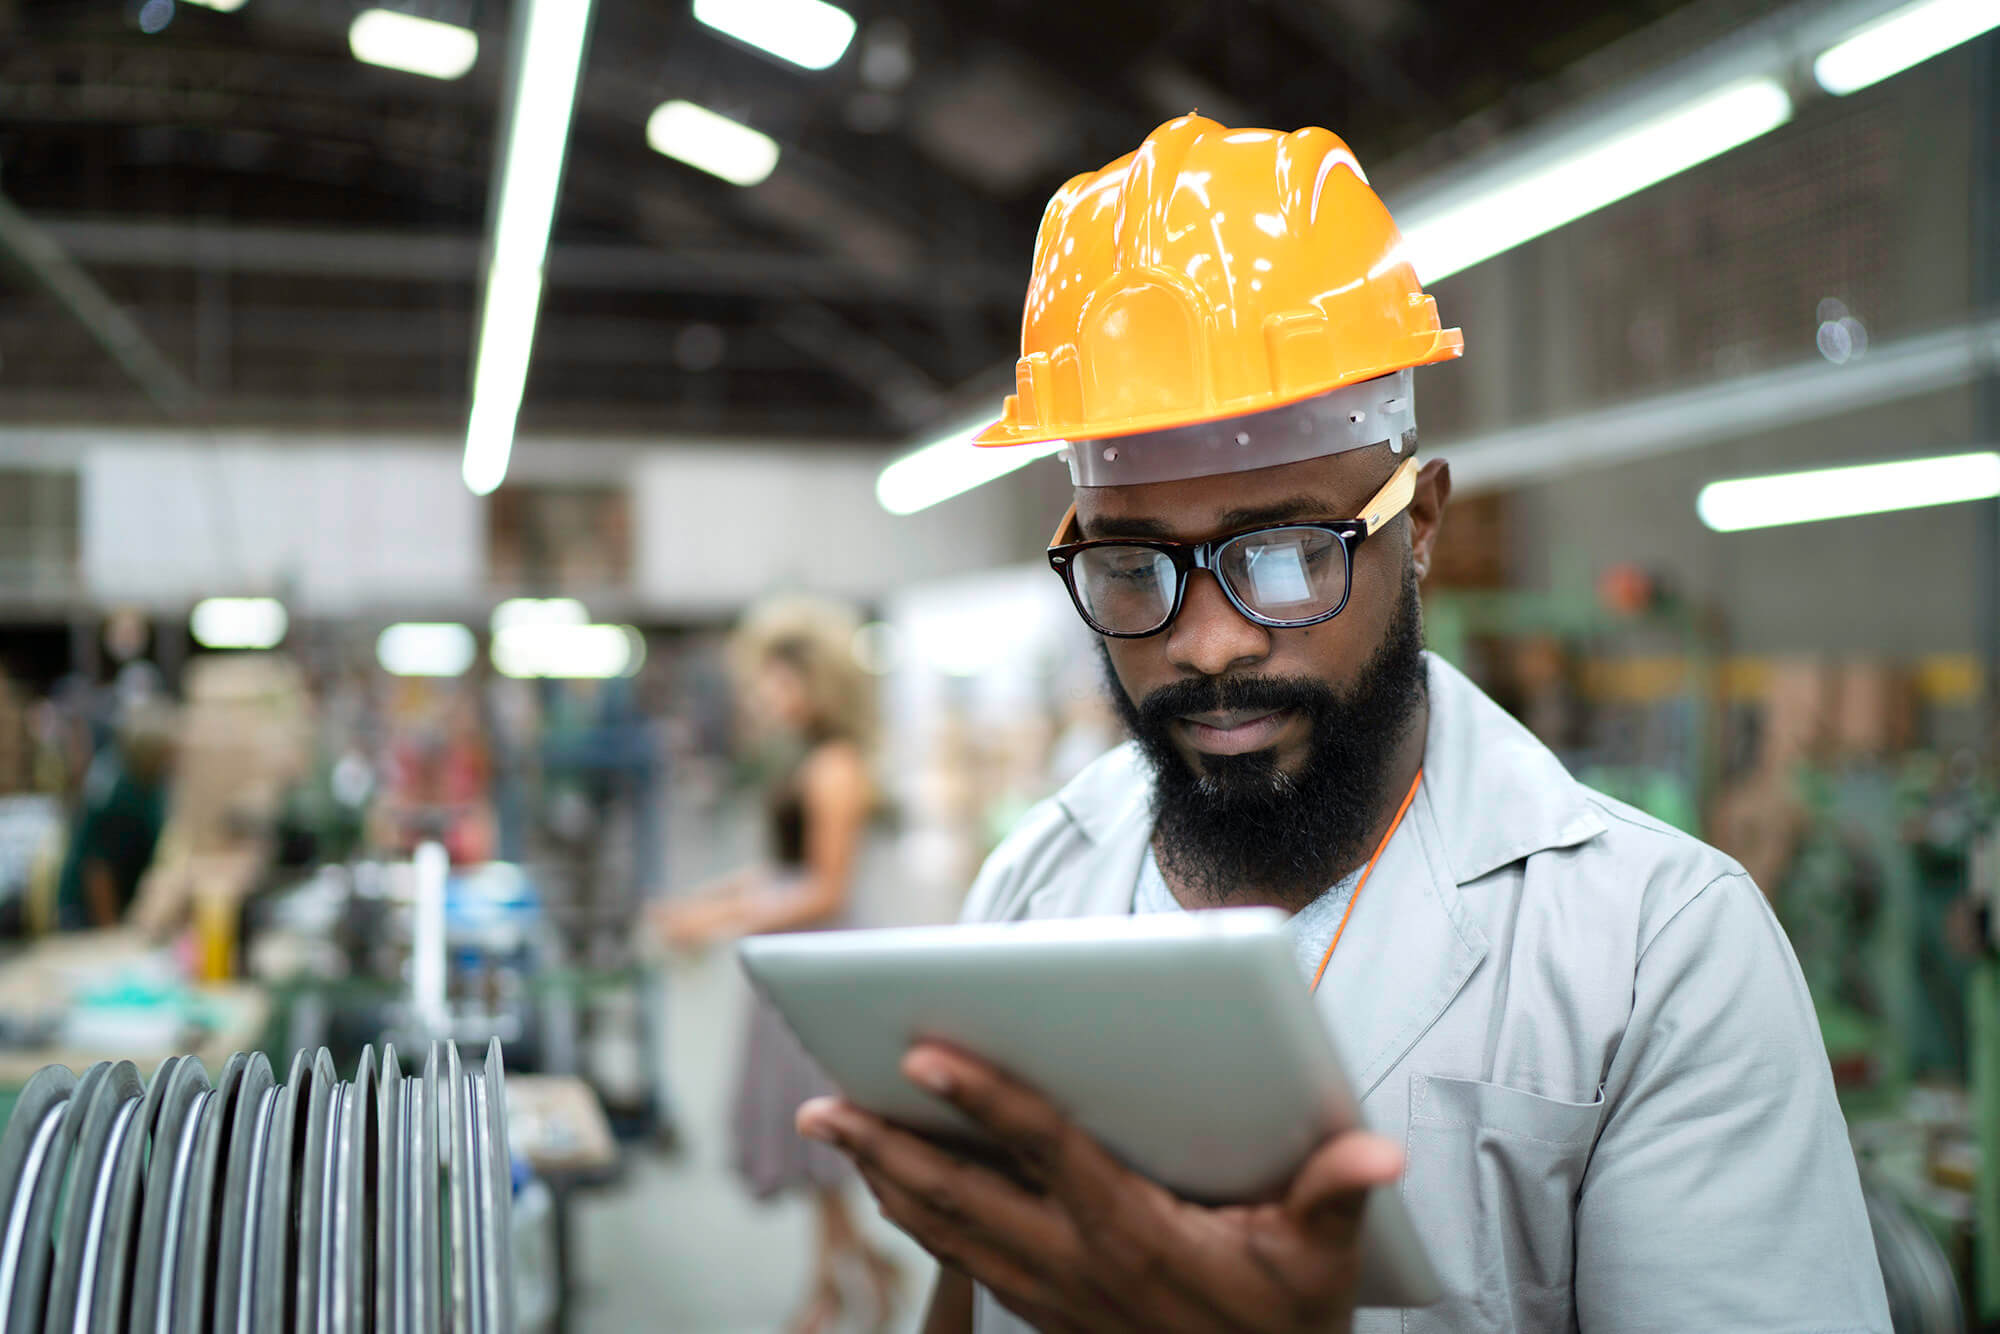 Building material worker is scrolling through tablet inside of warehouse